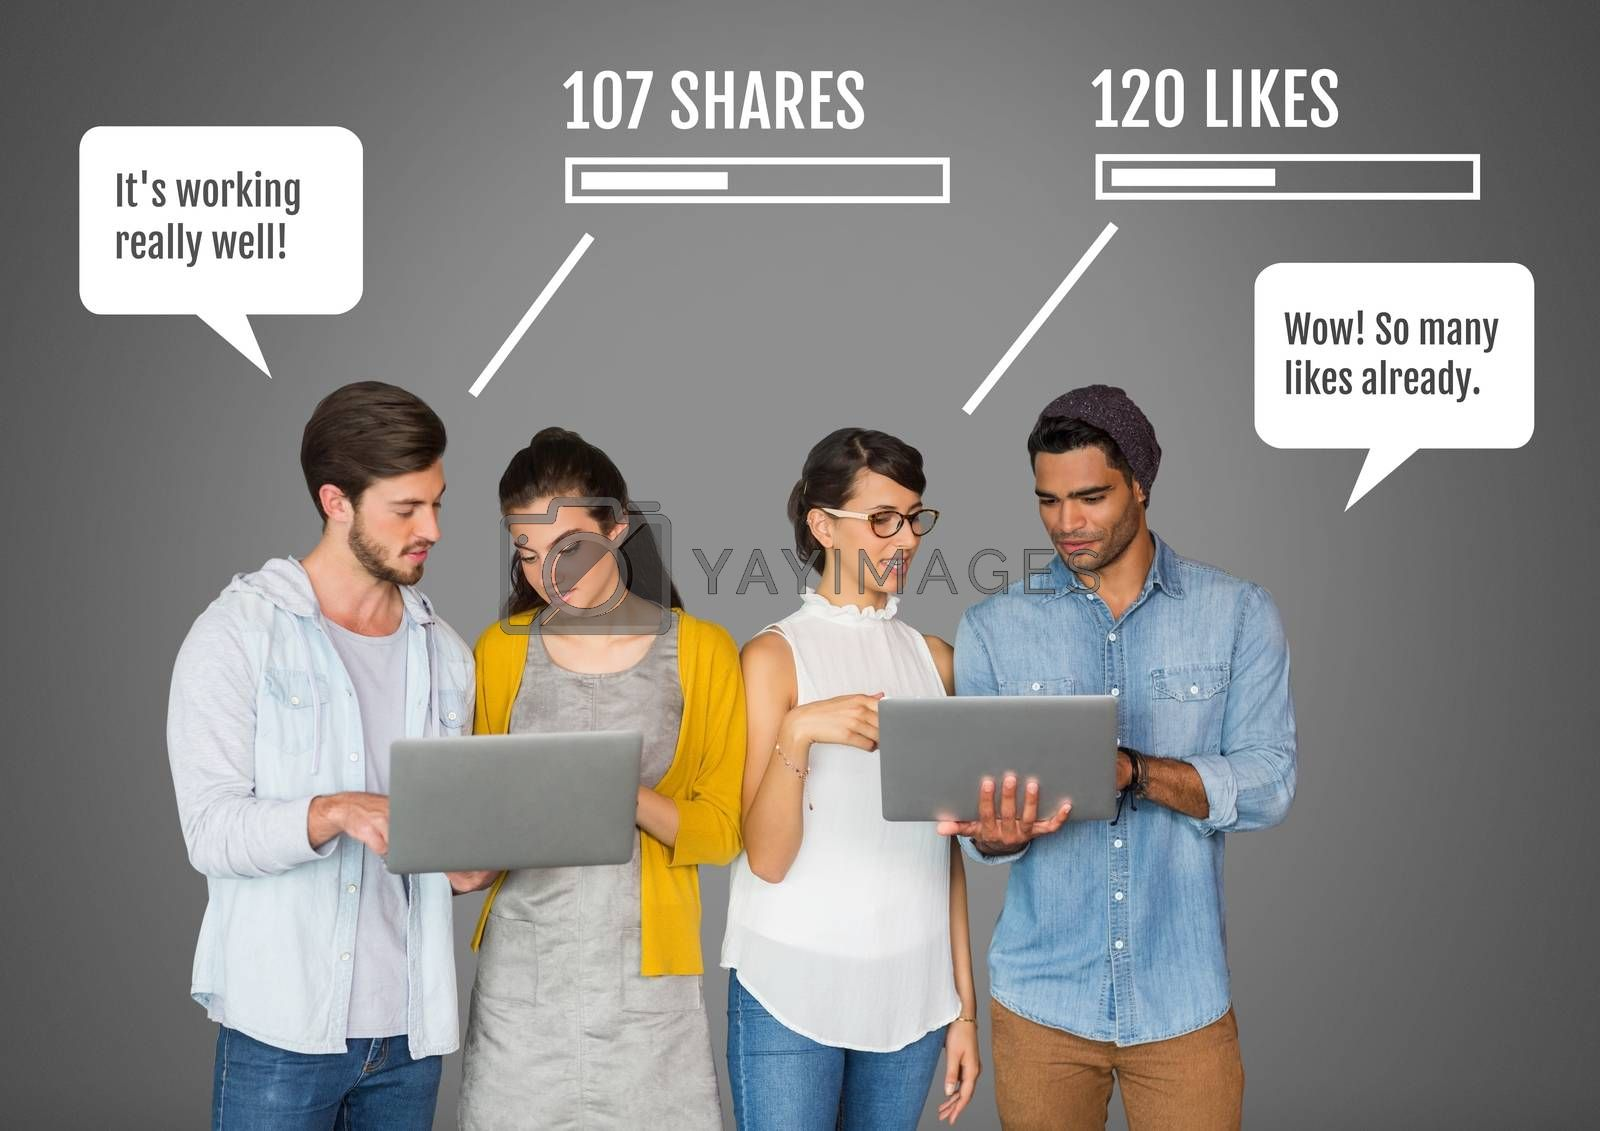 Digital composite of People on laptops with shares and likes Social media interfaces